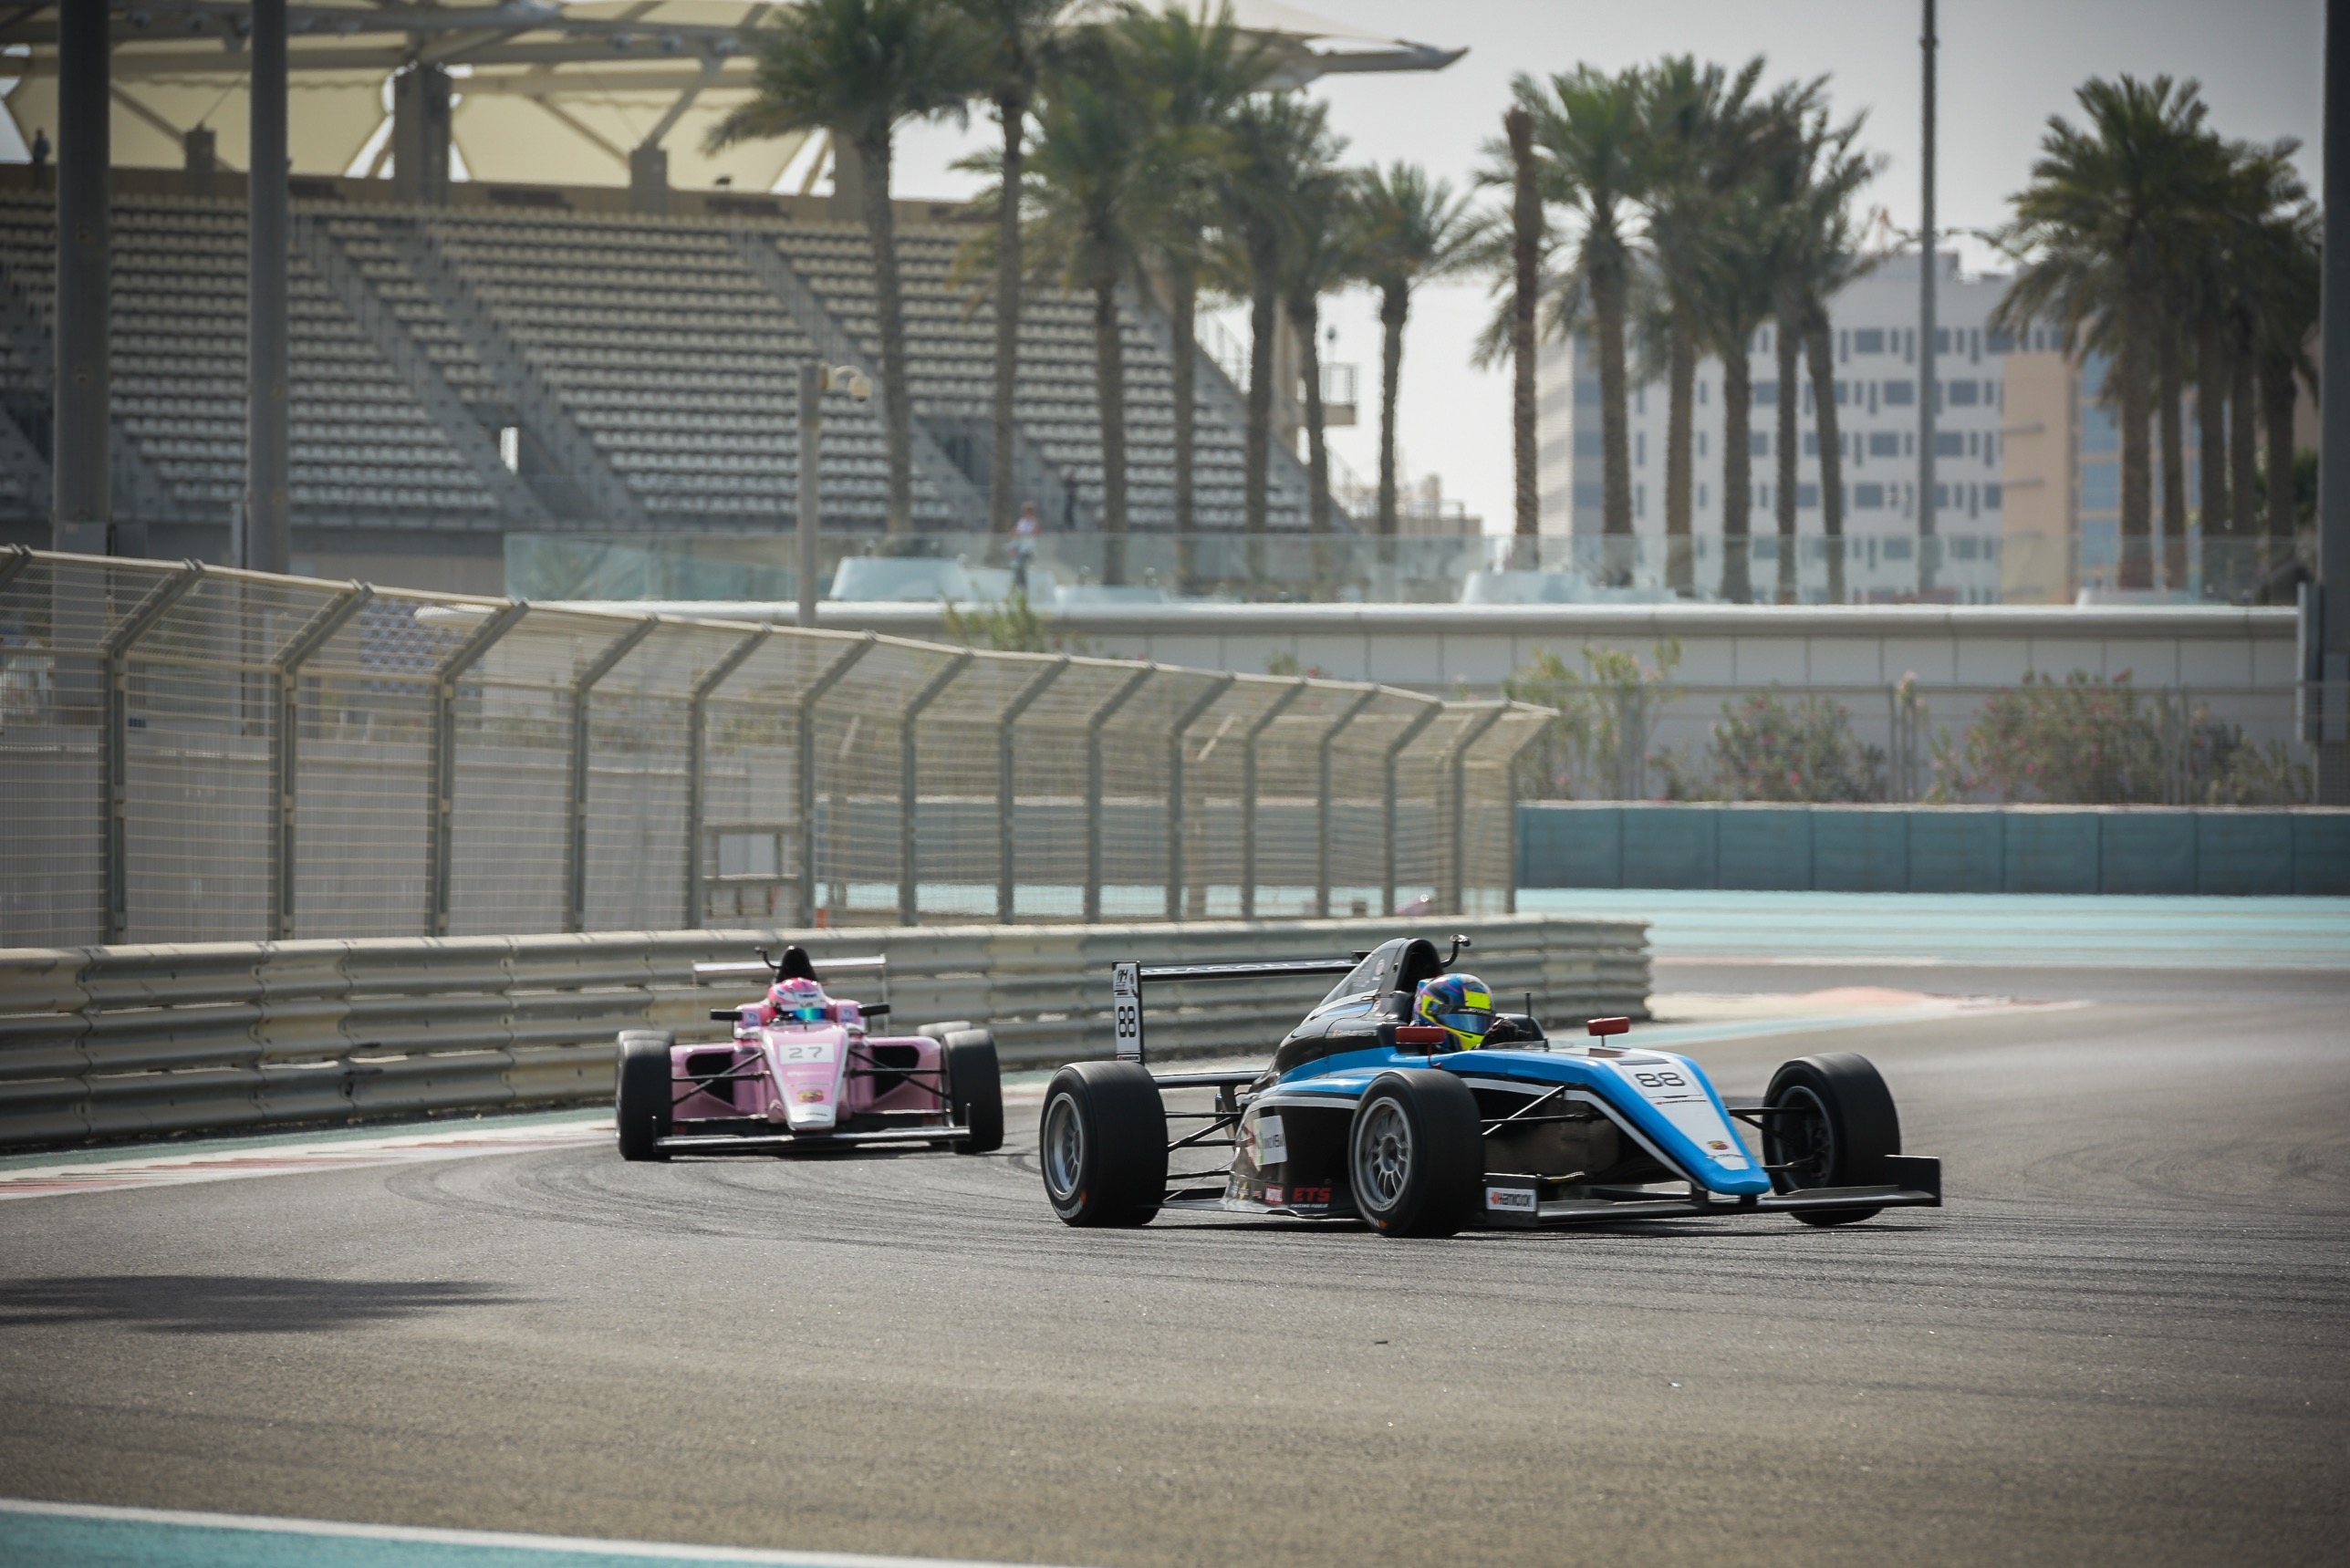 F4UAE Press Round5 Weerts 88 and Schumacher 27 in running for title